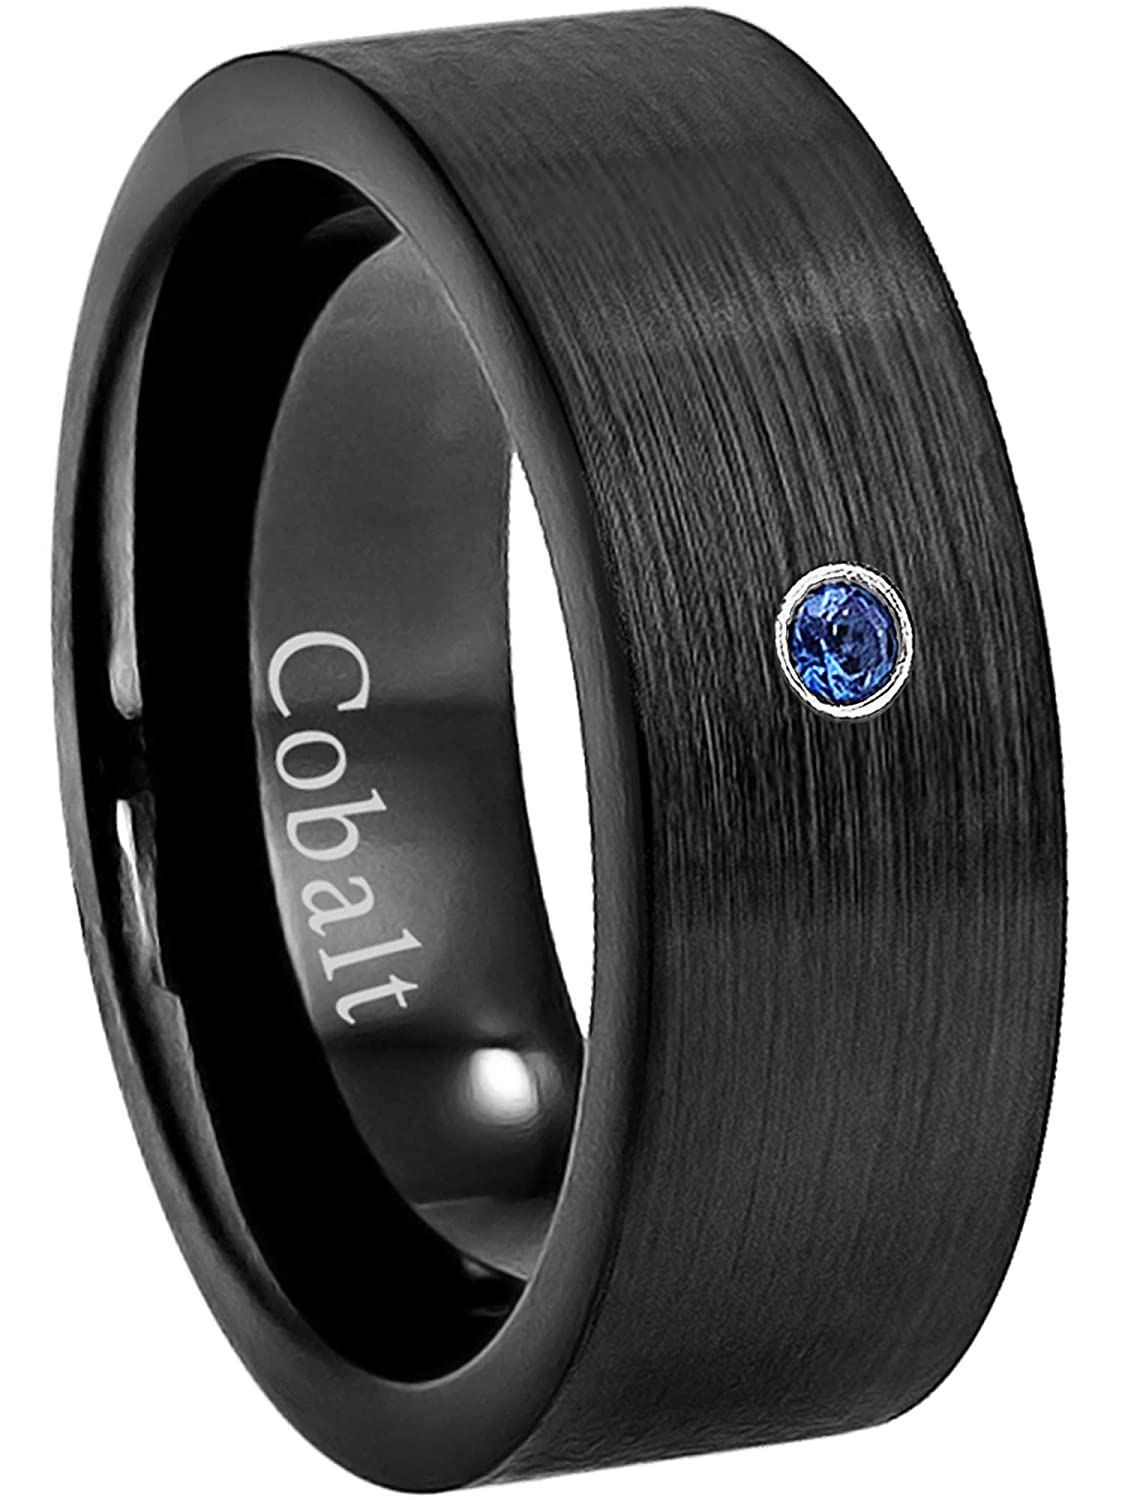 0.07ct Blue Sapphire Cobalt Ring September Birthstone Ring Jewelry Avalanche 8MM Comfort Fit Brushed Black Ion Pipe Cut Mens Cobalt Chrome Wedding Band